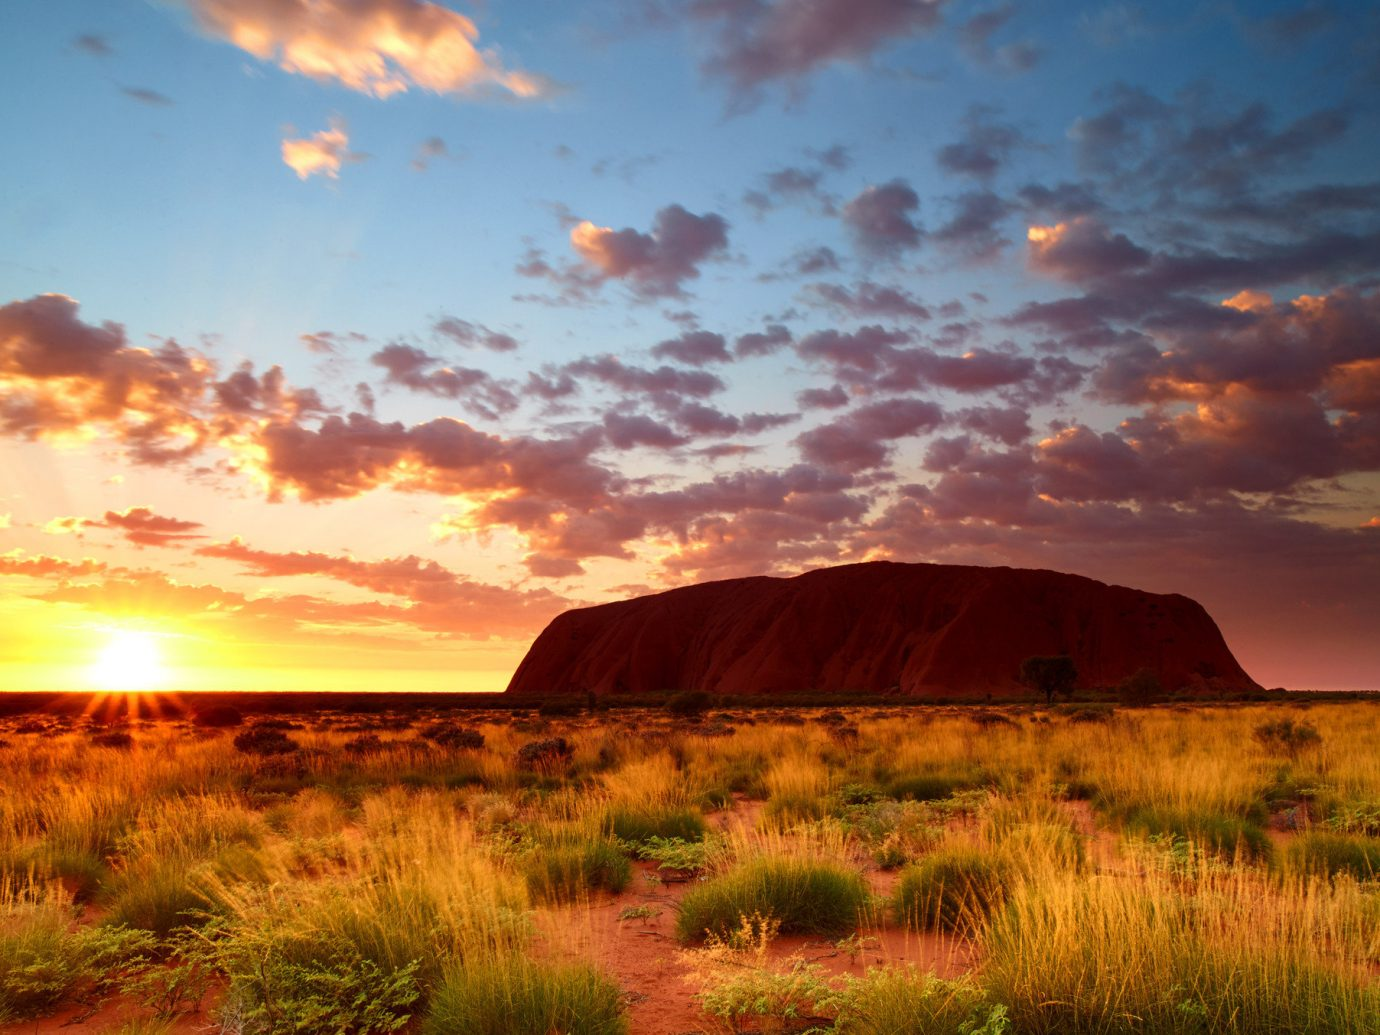 Uluru rock in the Australian Outback